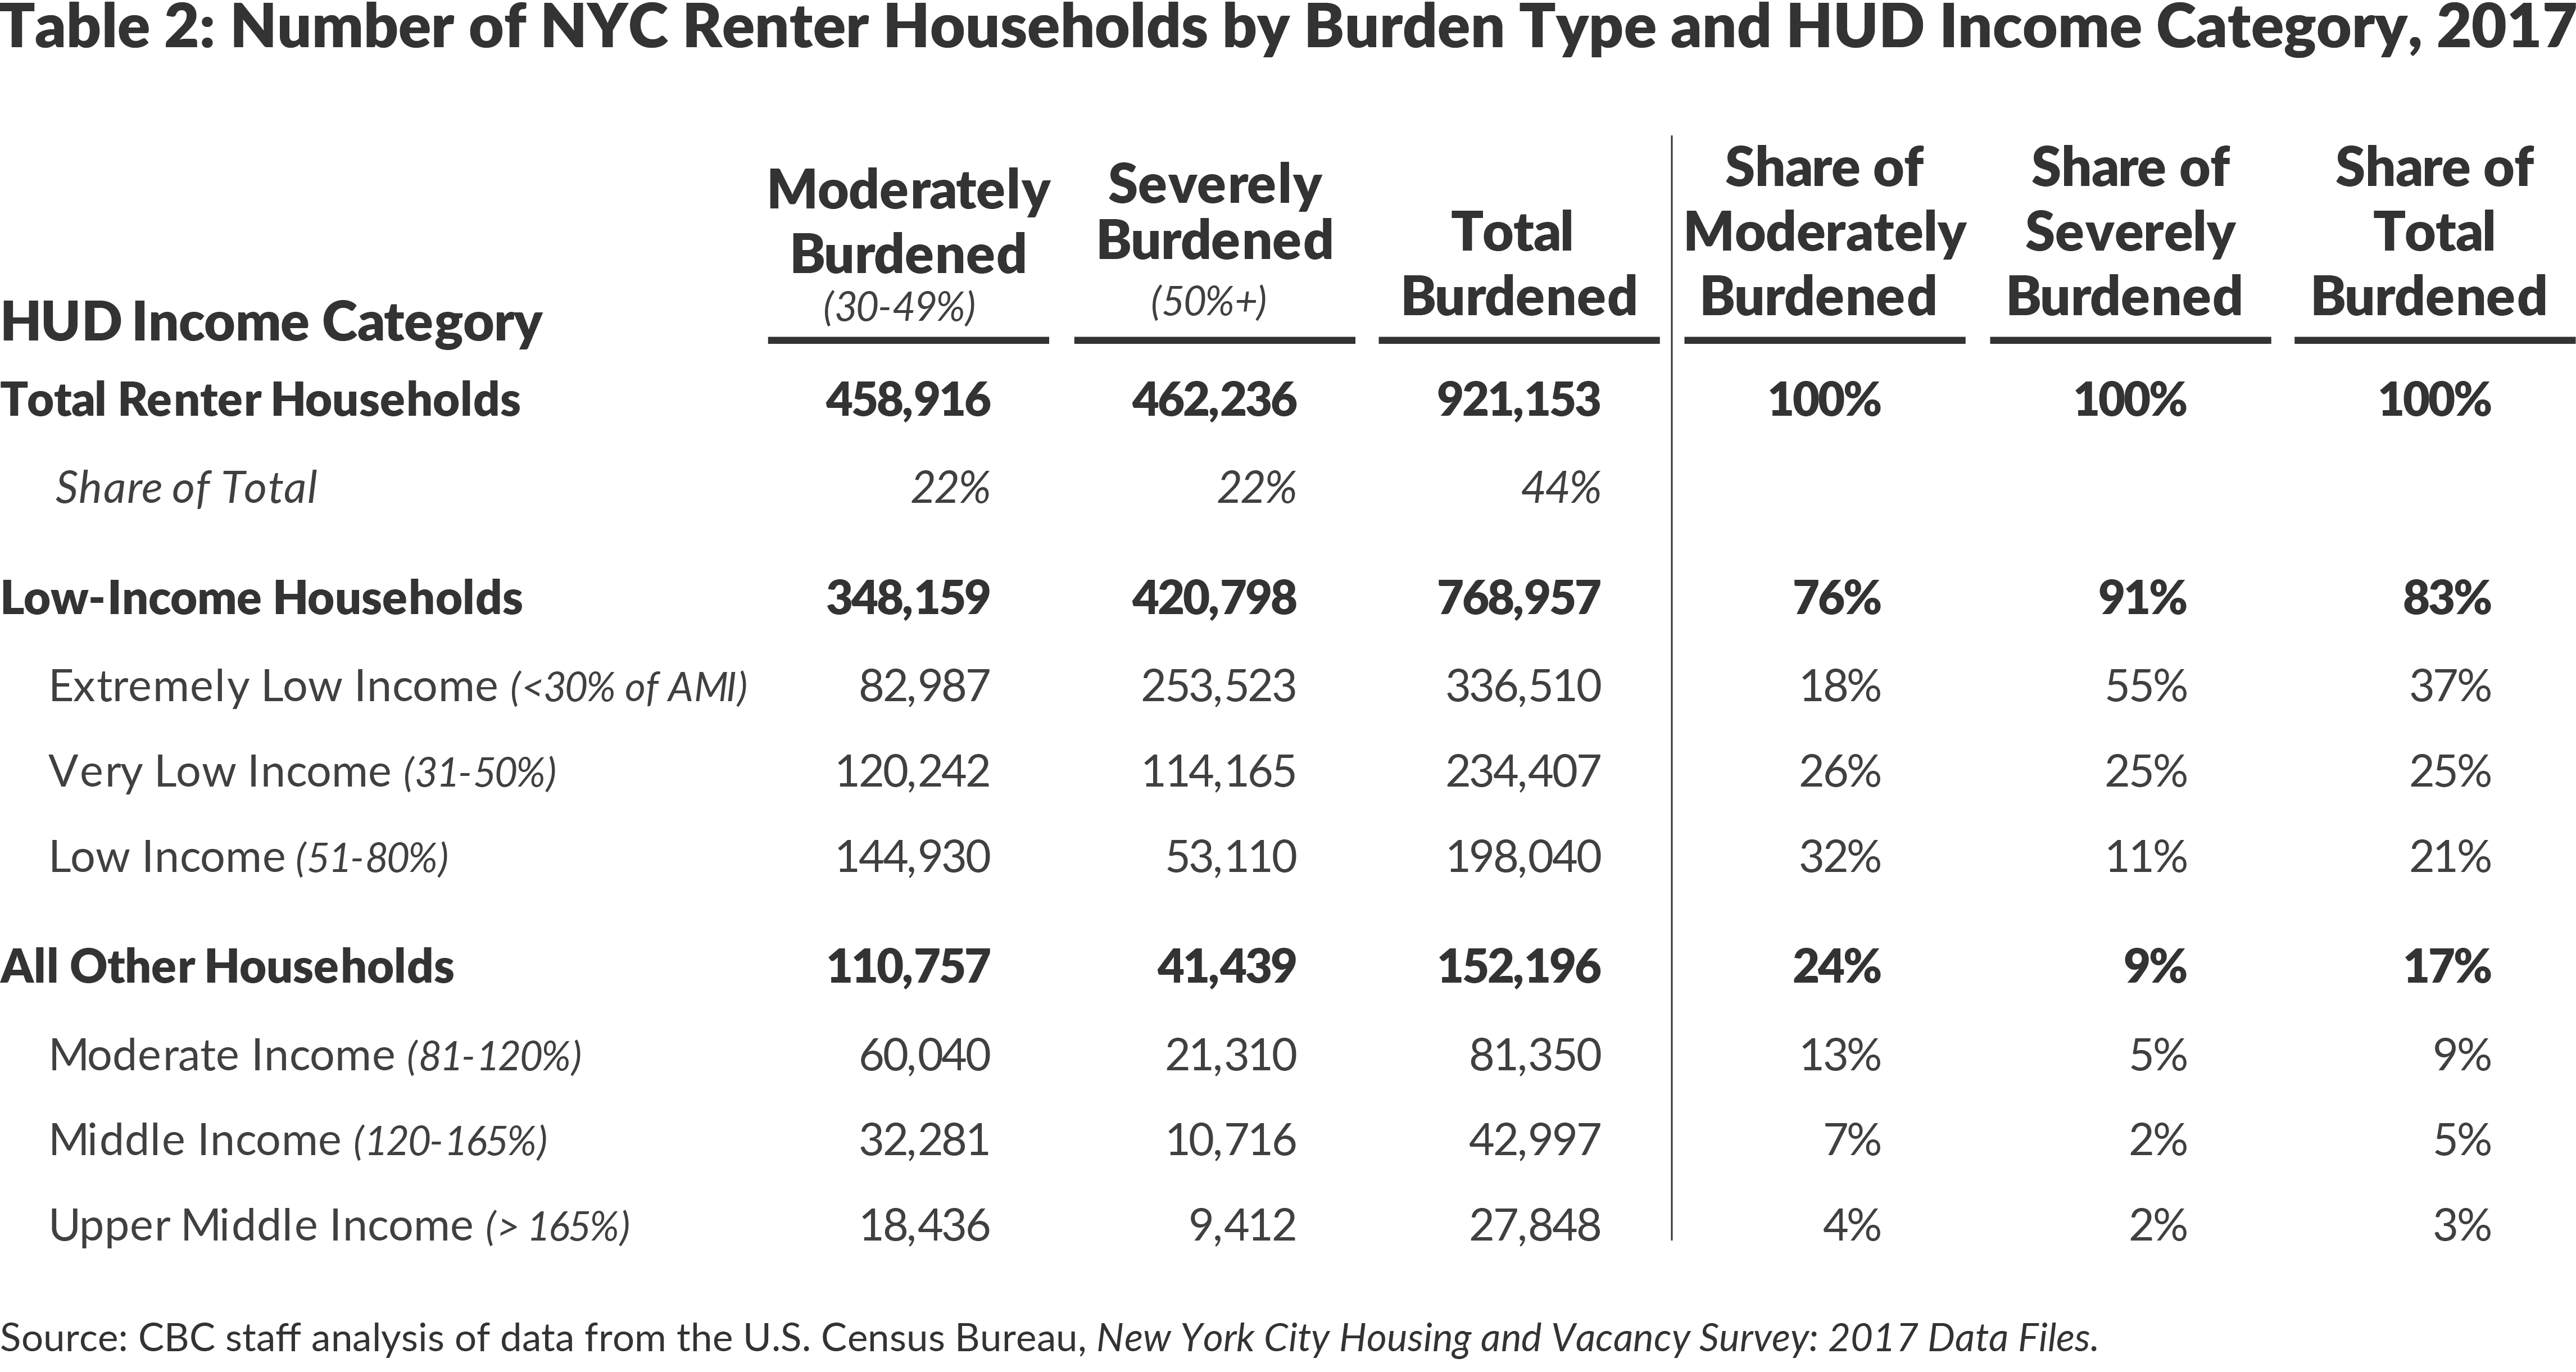 Table 2. Number of NYC Renter Households by Burden Type and HUD Income Category, 2017